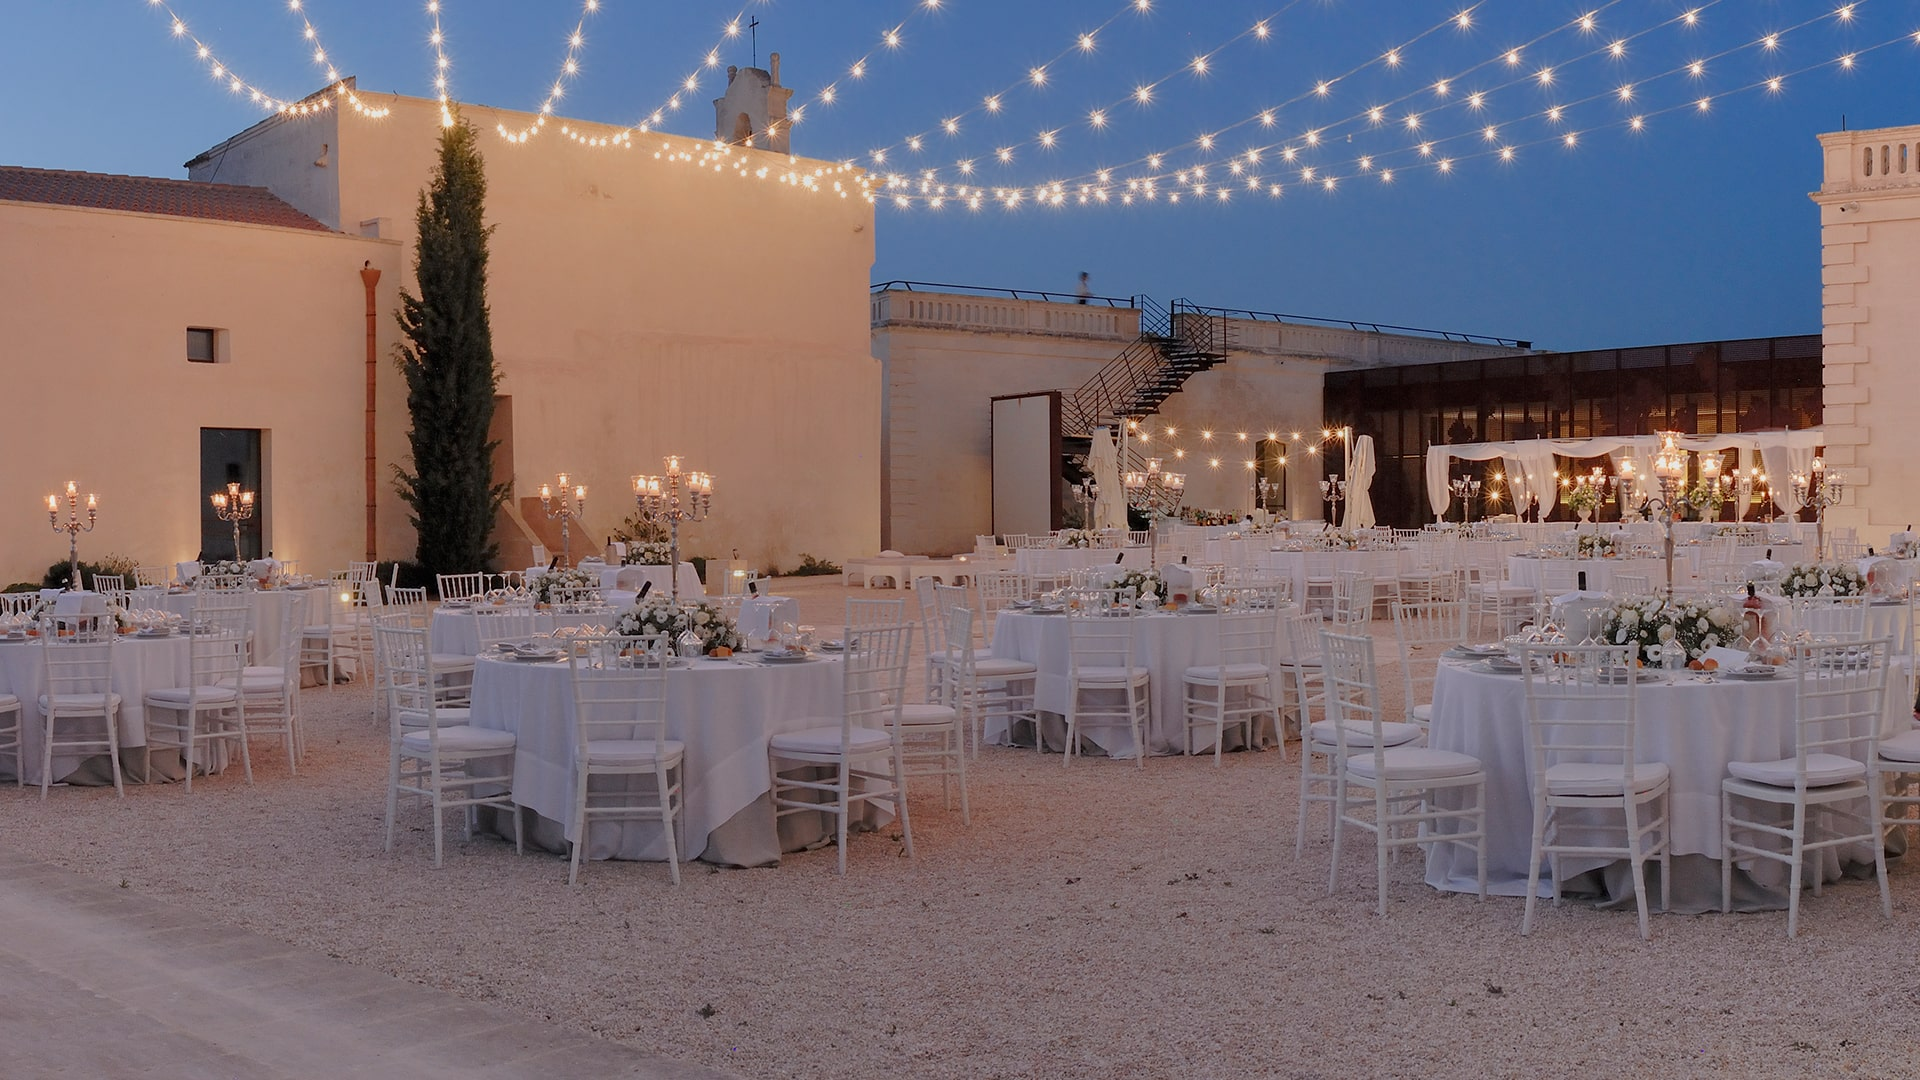 Masseria Amastuola location per eventi, matrimoni